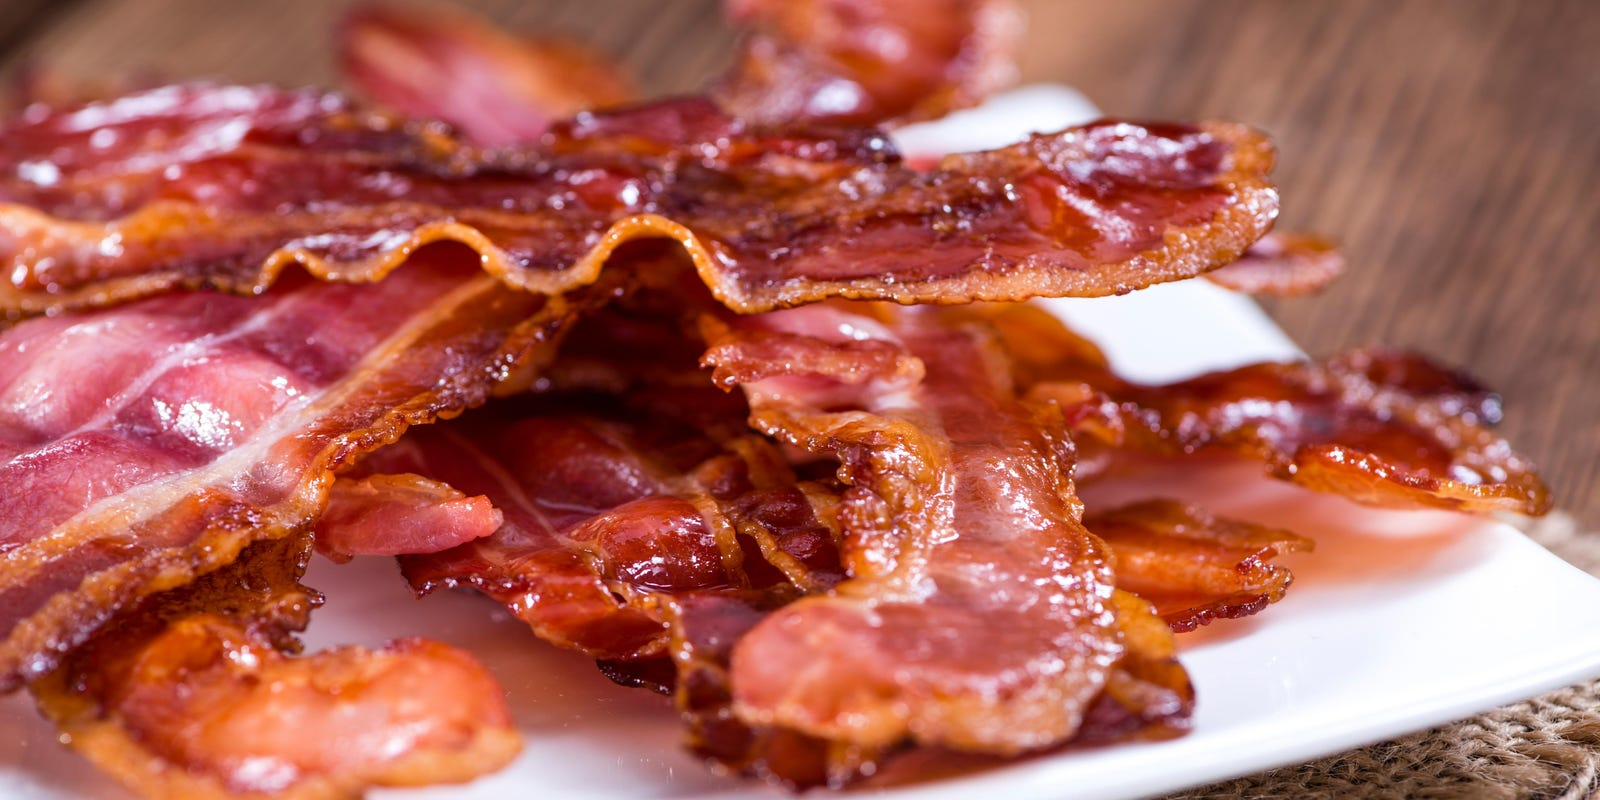 Sizzling bacon: Truck carrying pork catches fire